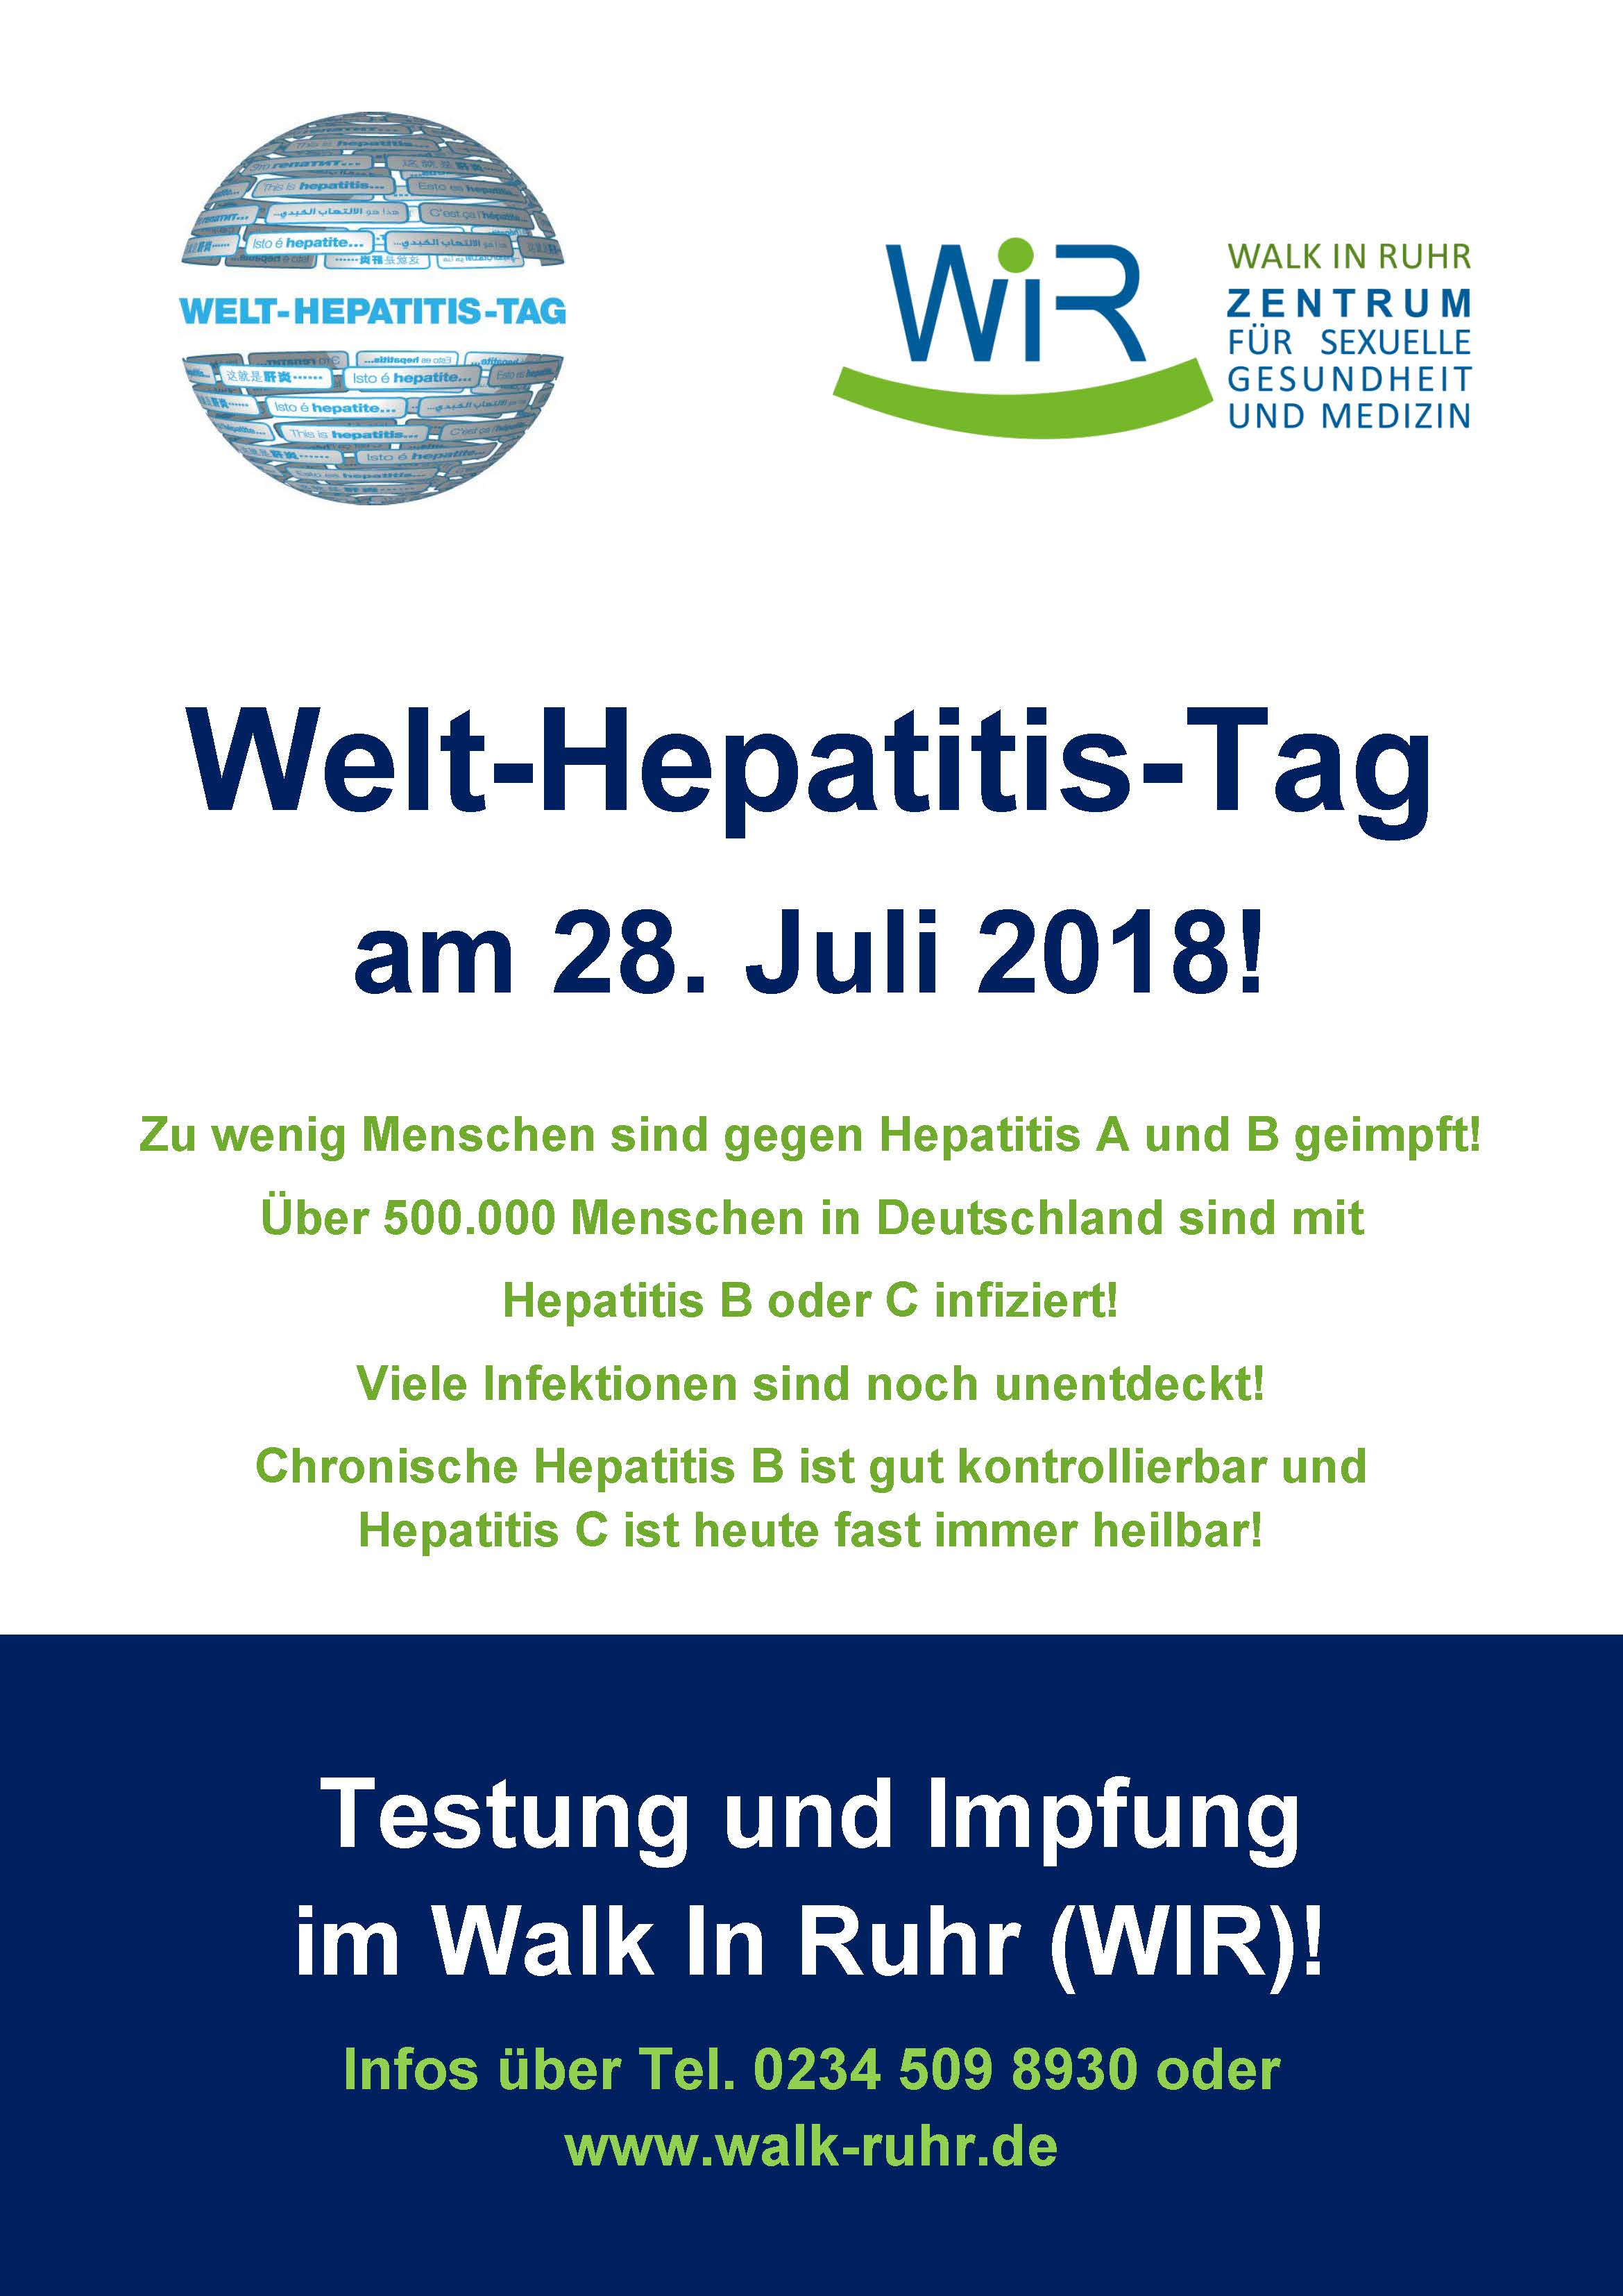 plakat_welt-hepatitis_tag_2018